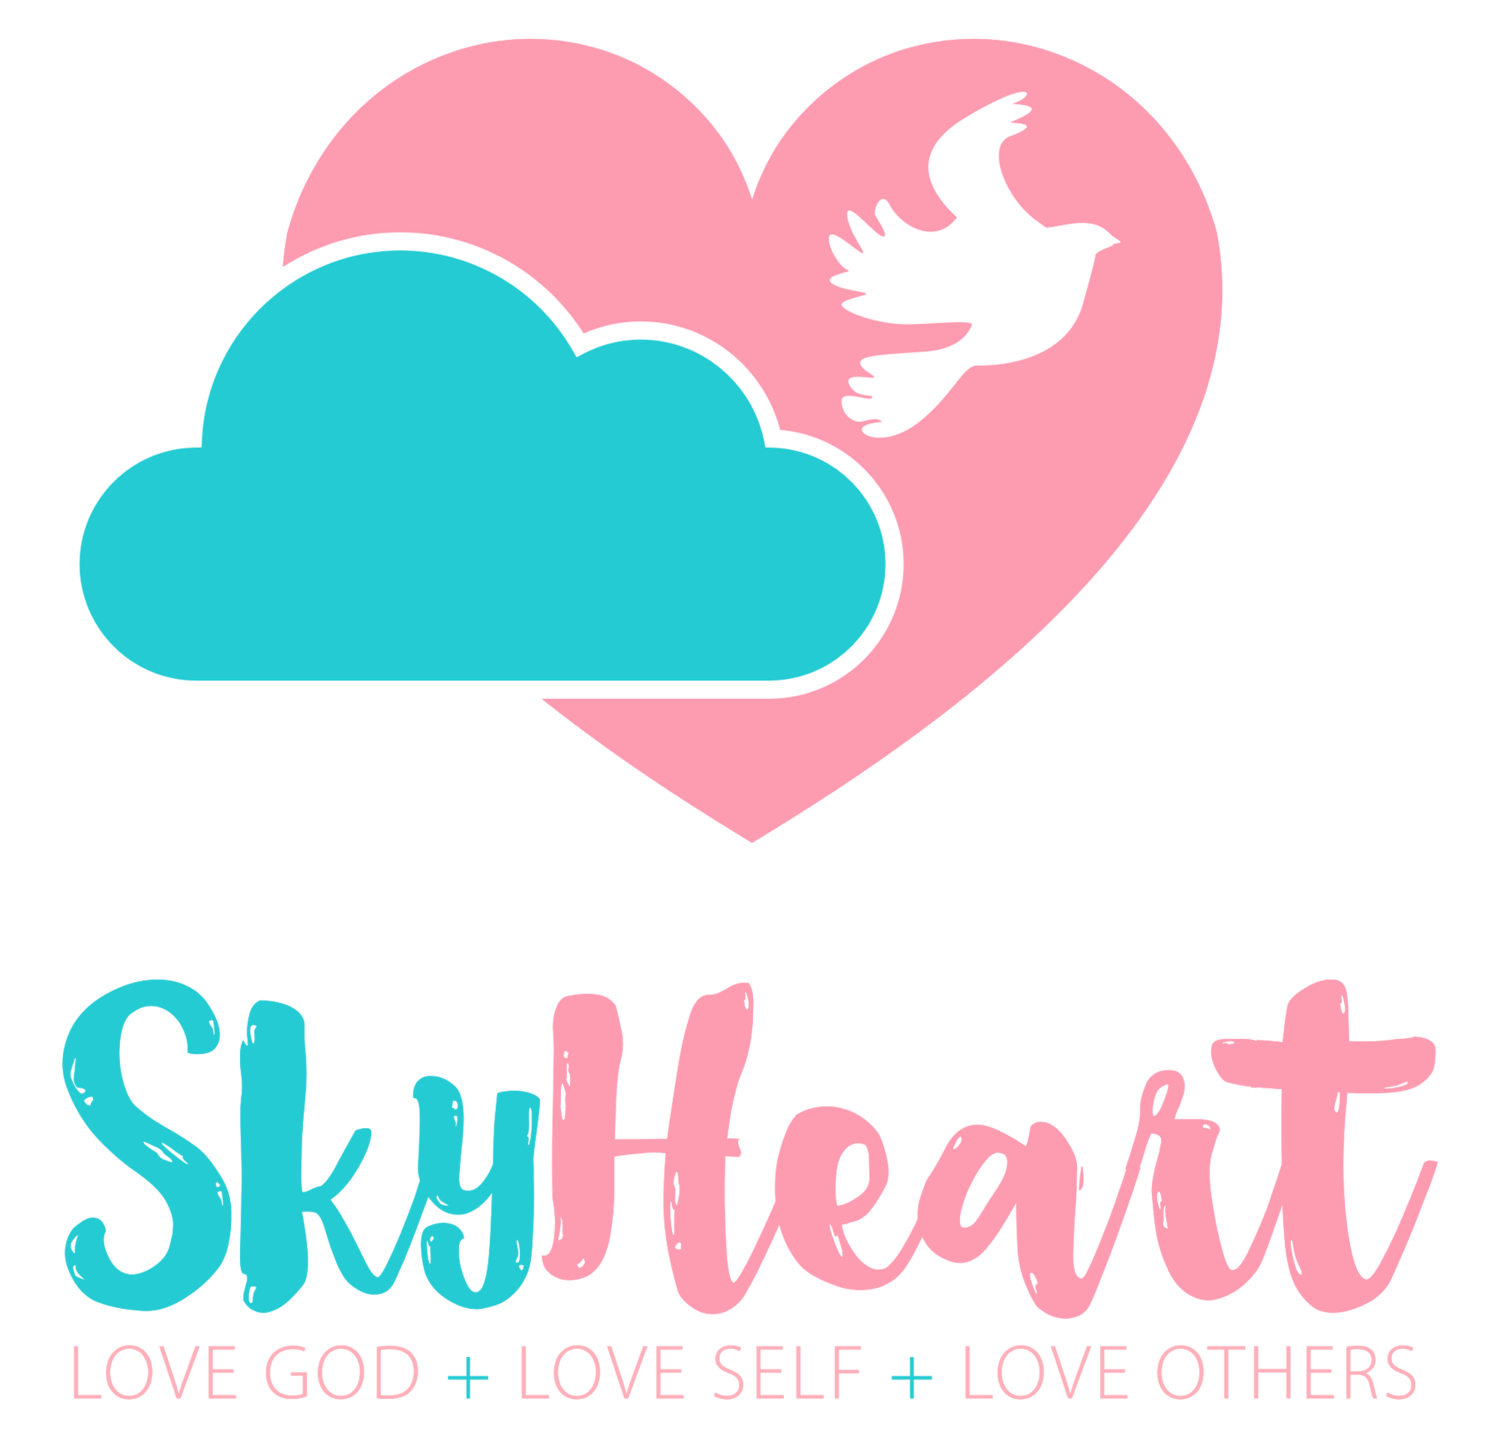 Kind clipart kindness matters. Skyheart